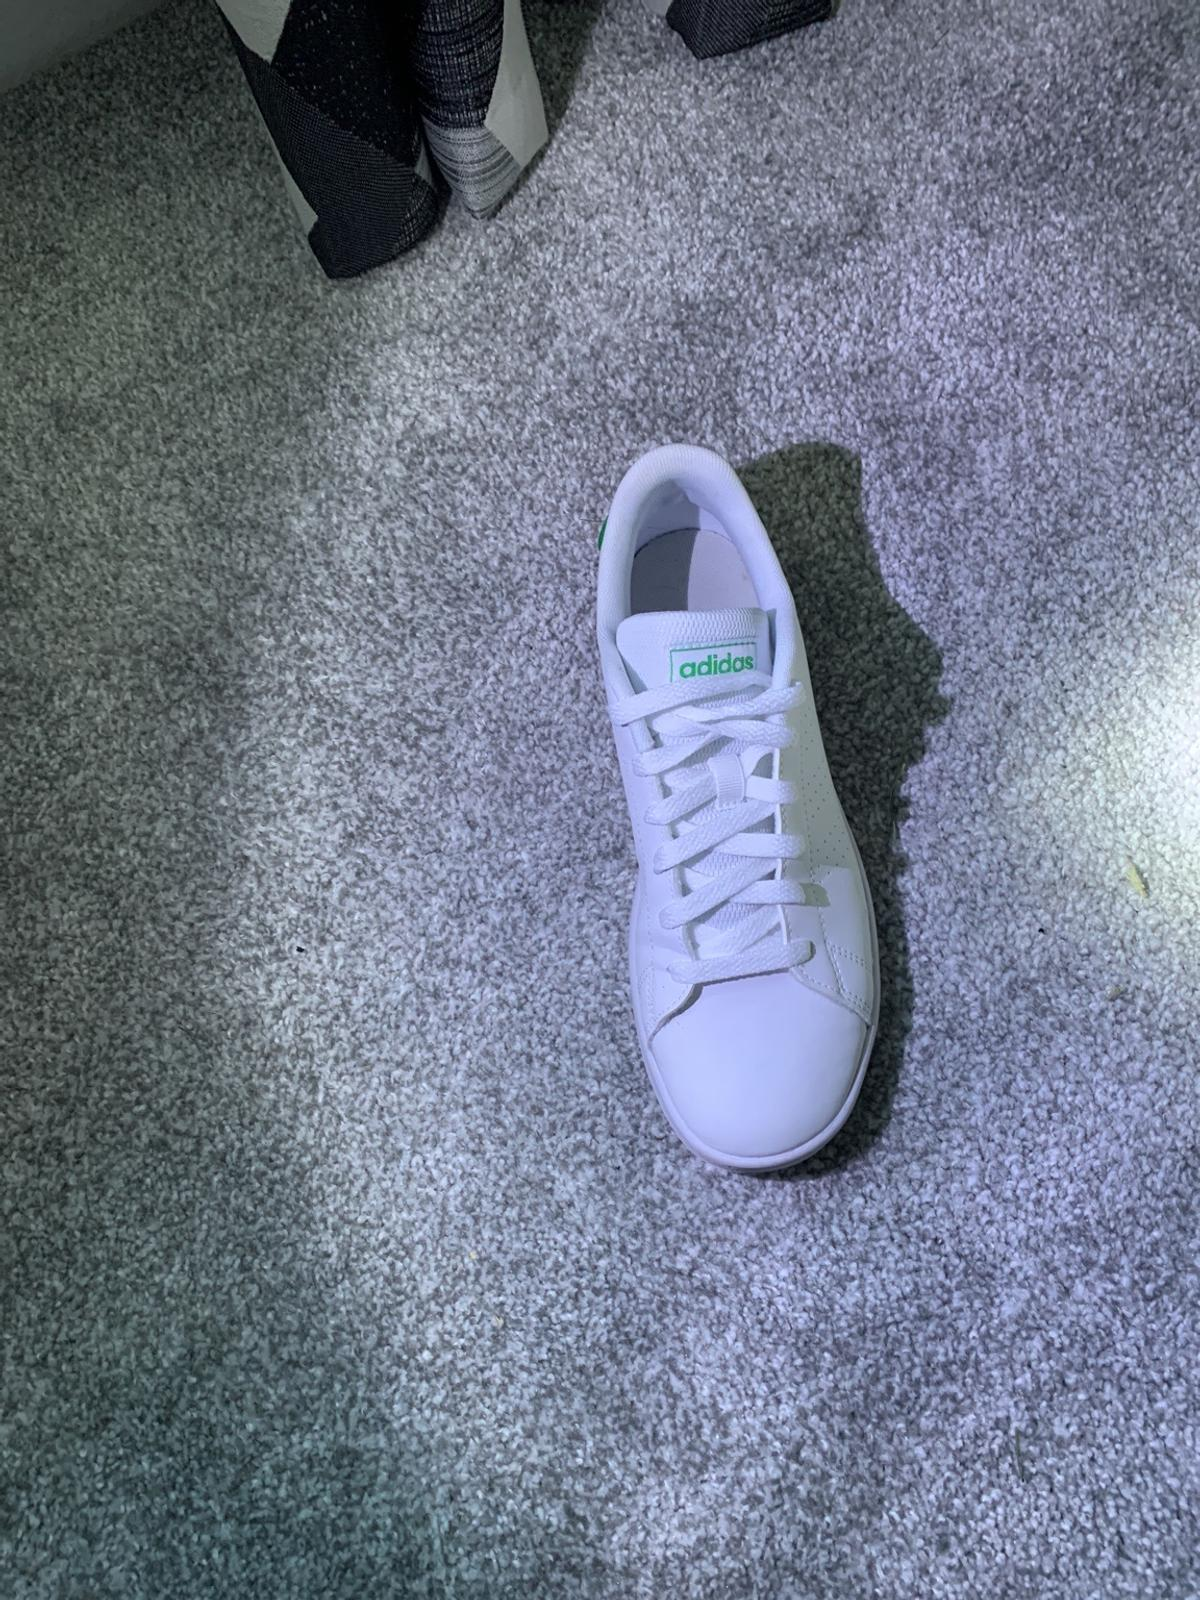 Green and white junior size 5 Adidas trainers